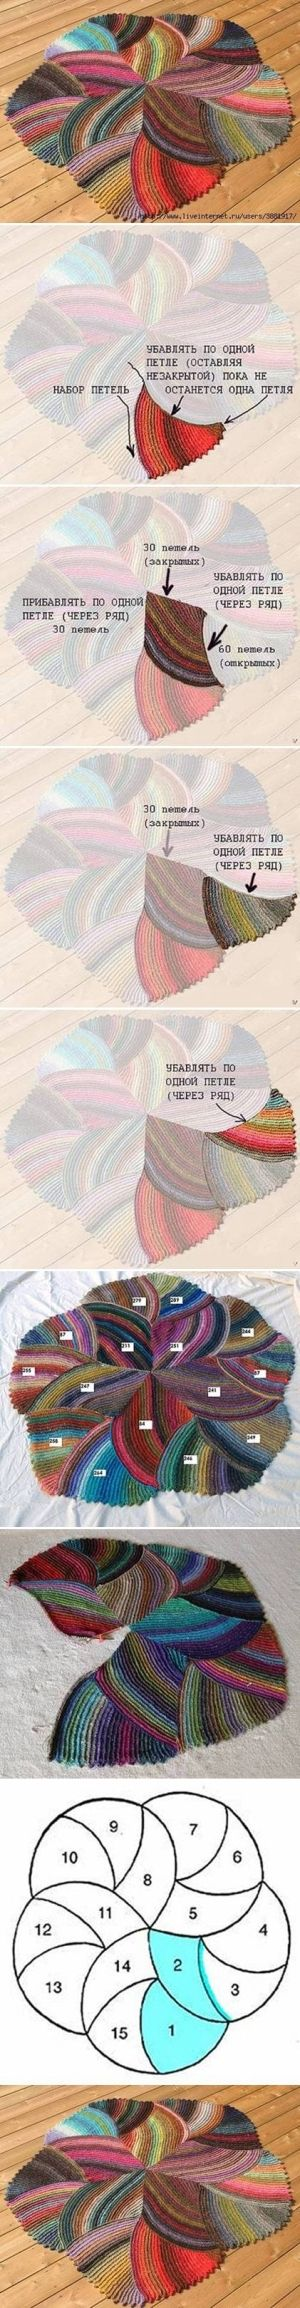 DIY Melange Rug. Additional info at http://www.howtoinstructions.org/how-to-make-melange-rug-step-by-step-diy-tutorial-instructions/ and http://www.liveinternet.ru/users/4342044/post161415191/